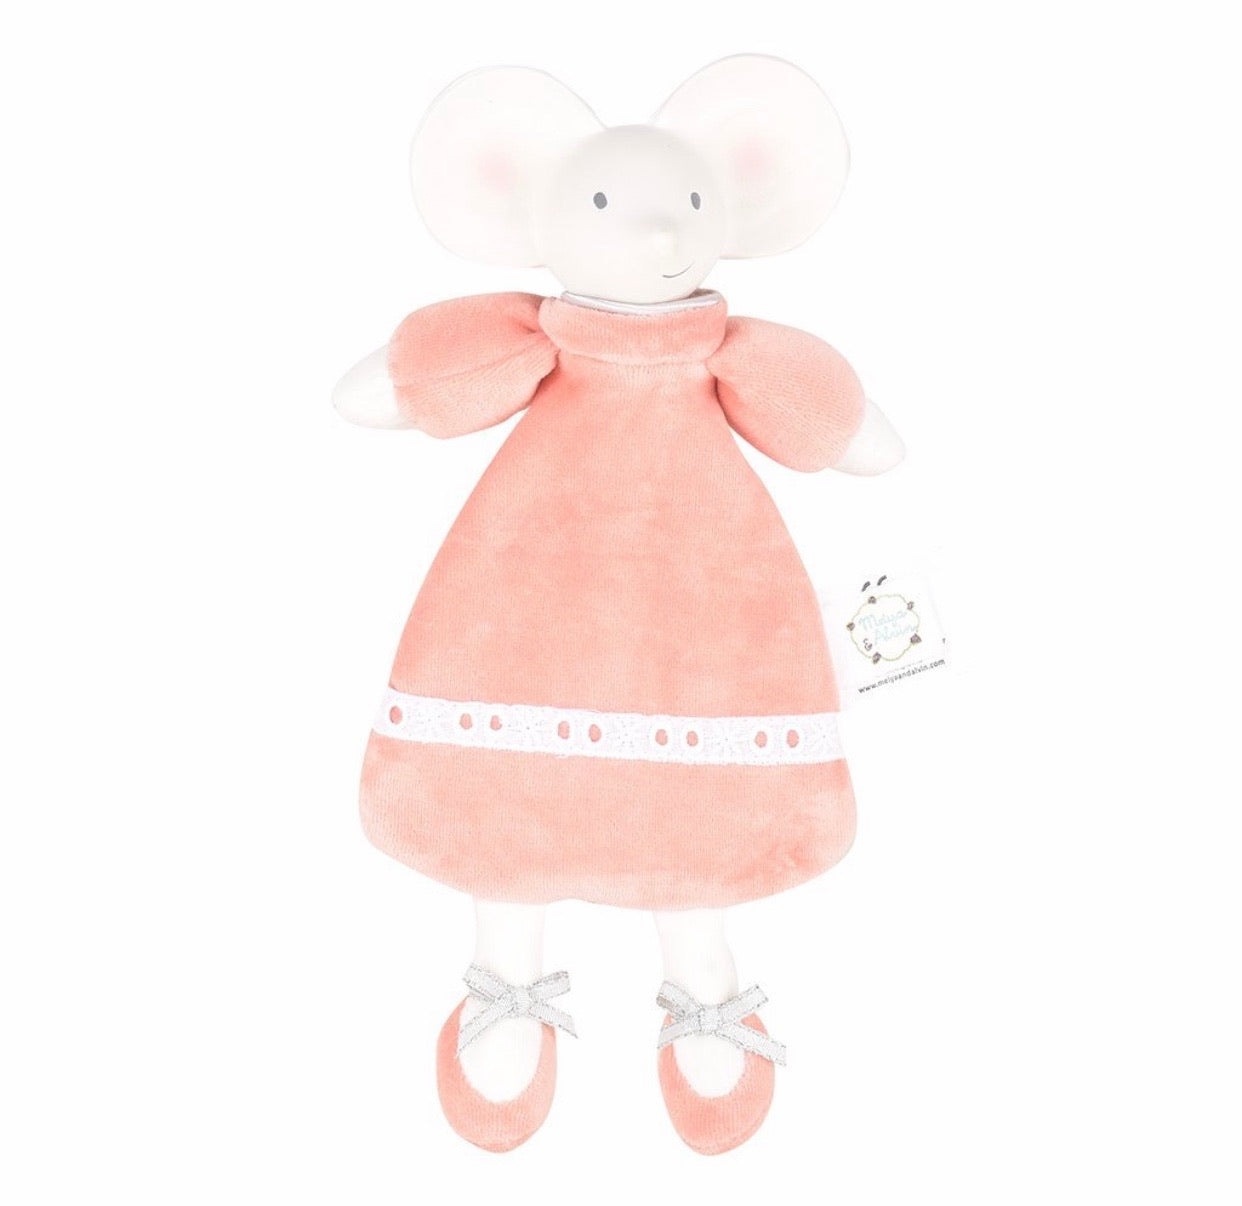 Natural Rubber Head, Organic Cotton Body Soft Toy – Meiya Lovey